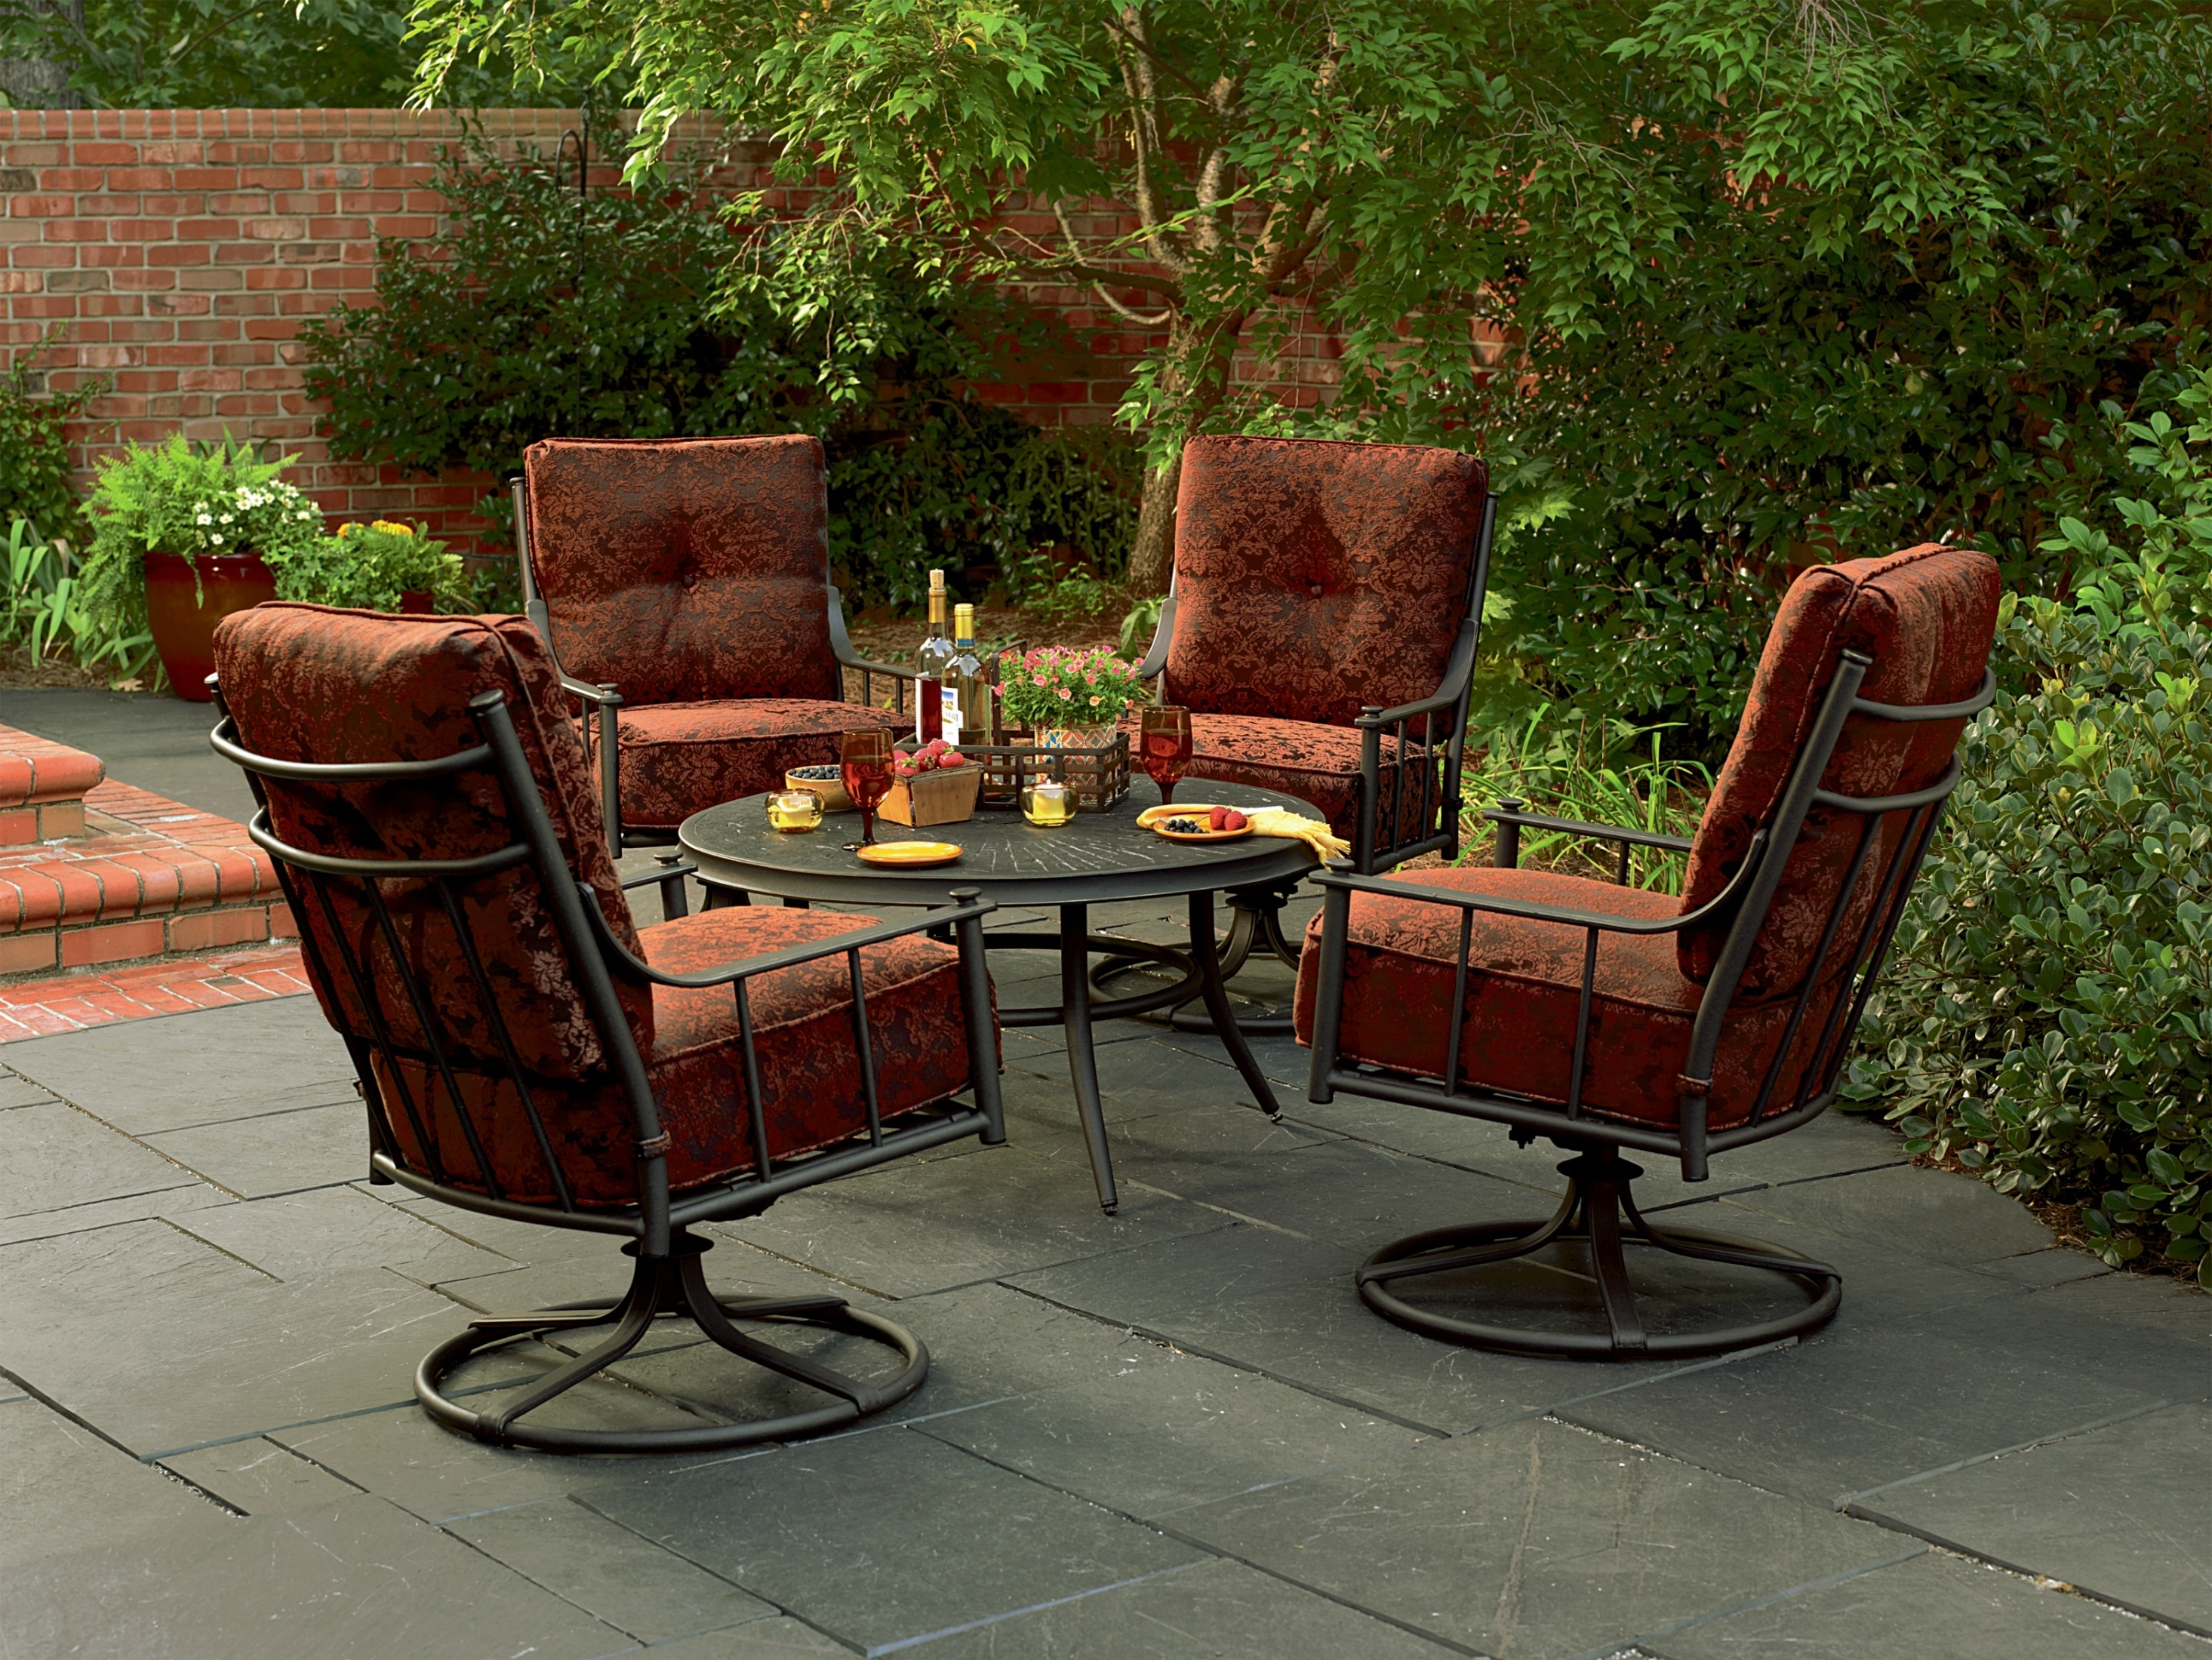 Steel Patio Conversation Sets Within Preferred Steel Patio Chairs Best Of Metal Conversation Patio Set S6Lkd (View 18 of 20)